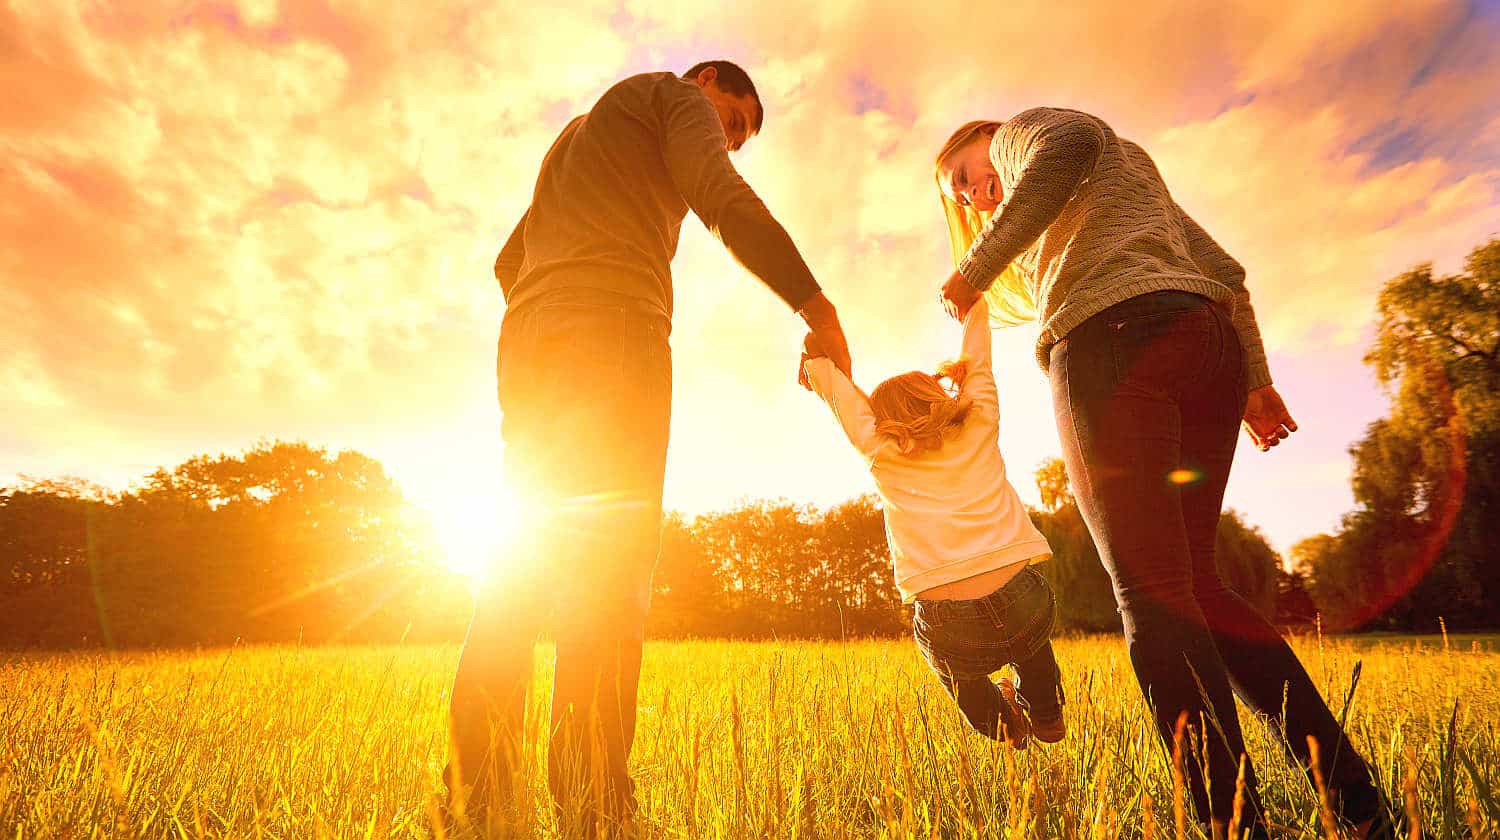 Feature | Happy family in the park evening light | Best Family Safety Gadgets, Apps and Digital Books